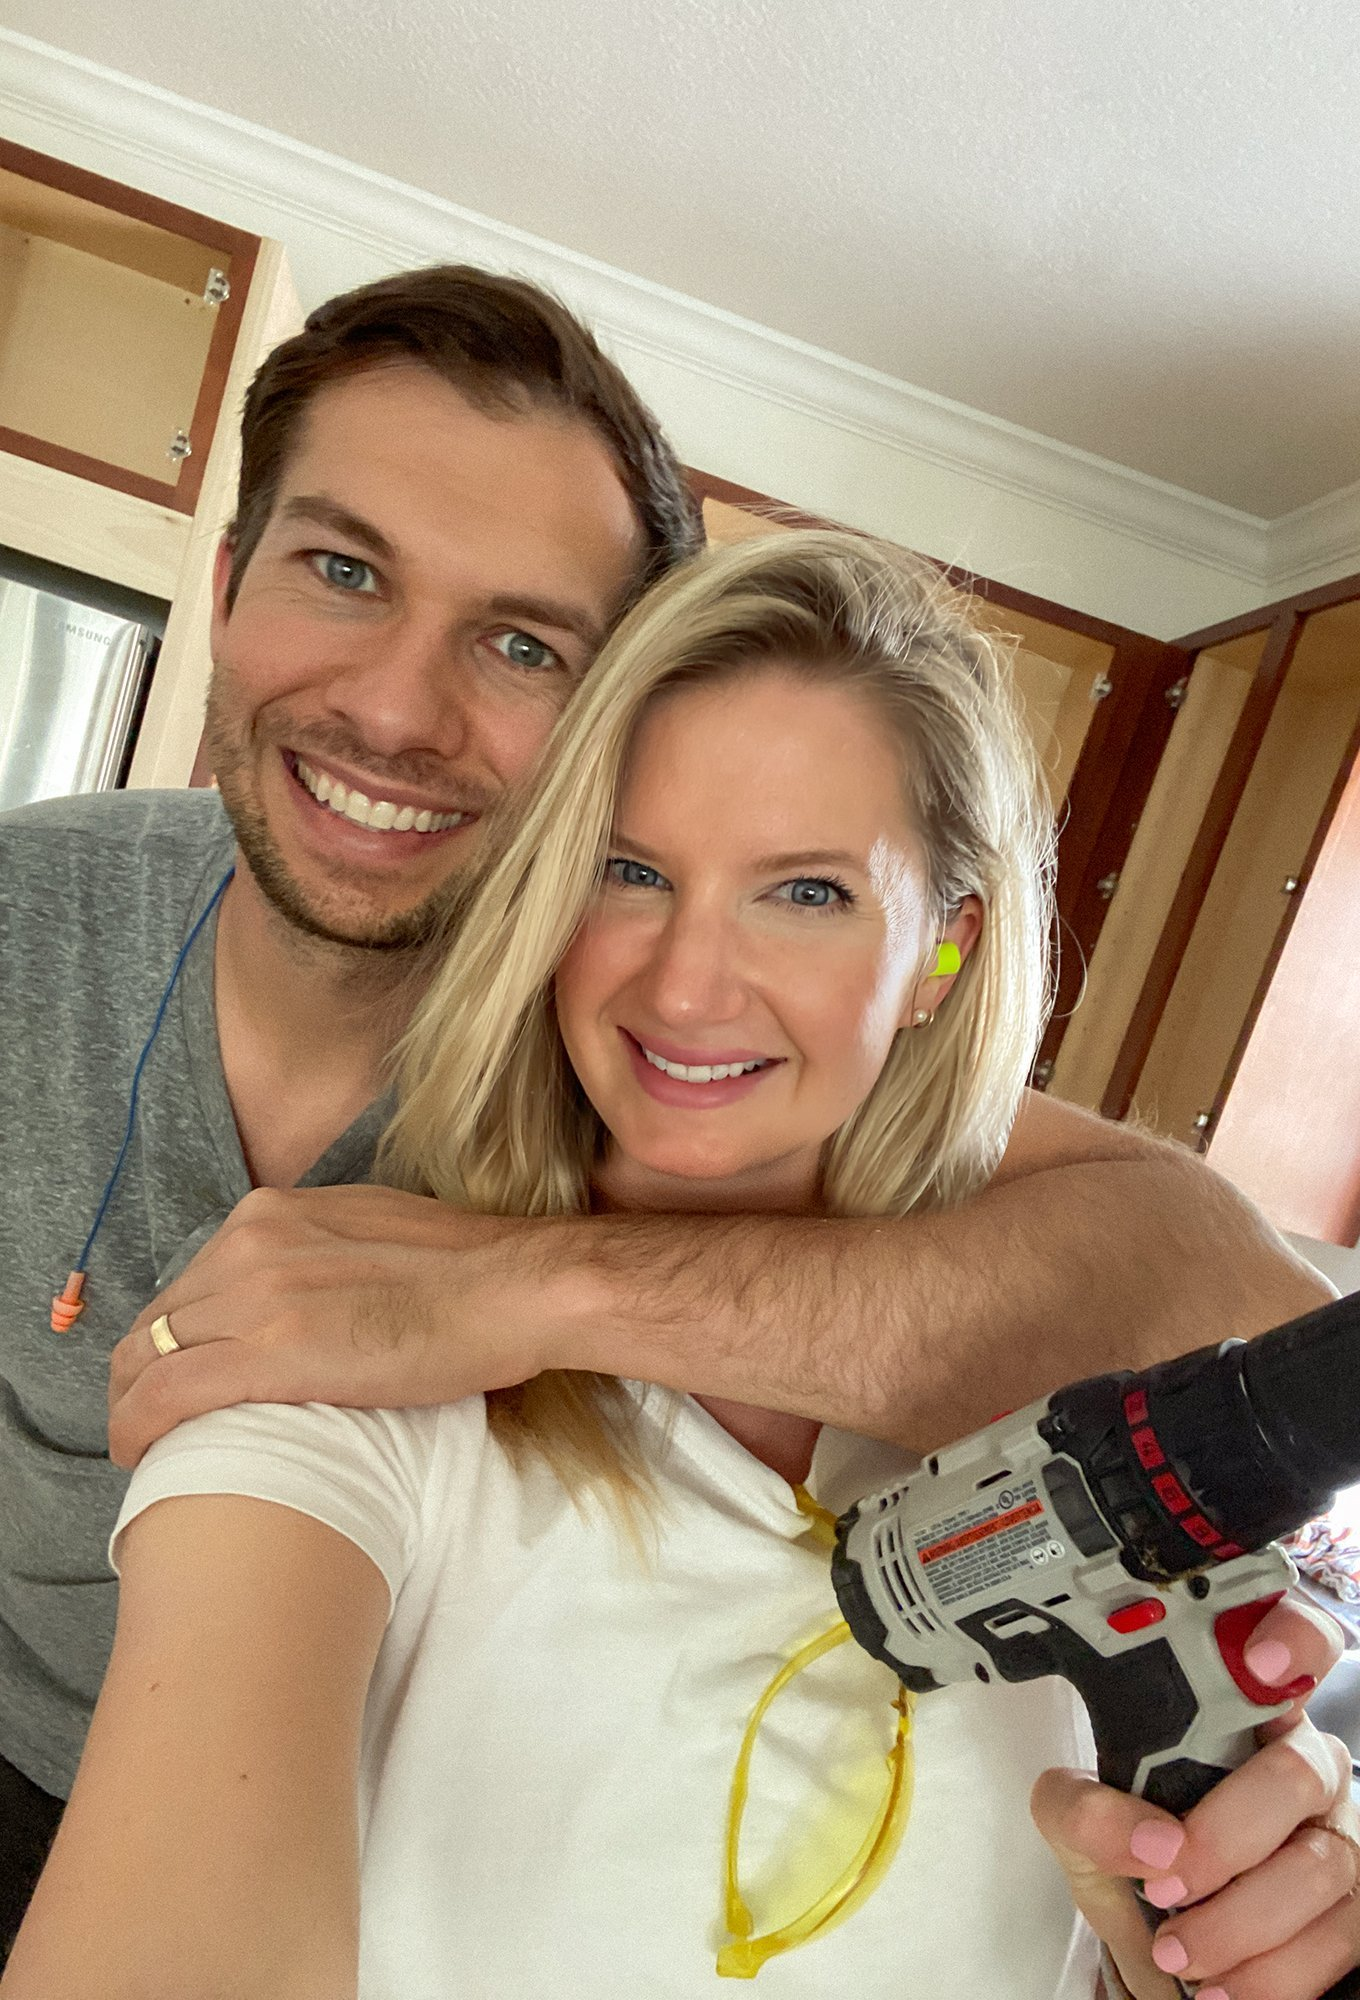 Ashley Brooke and Ryan in their DIY kitchen renovation